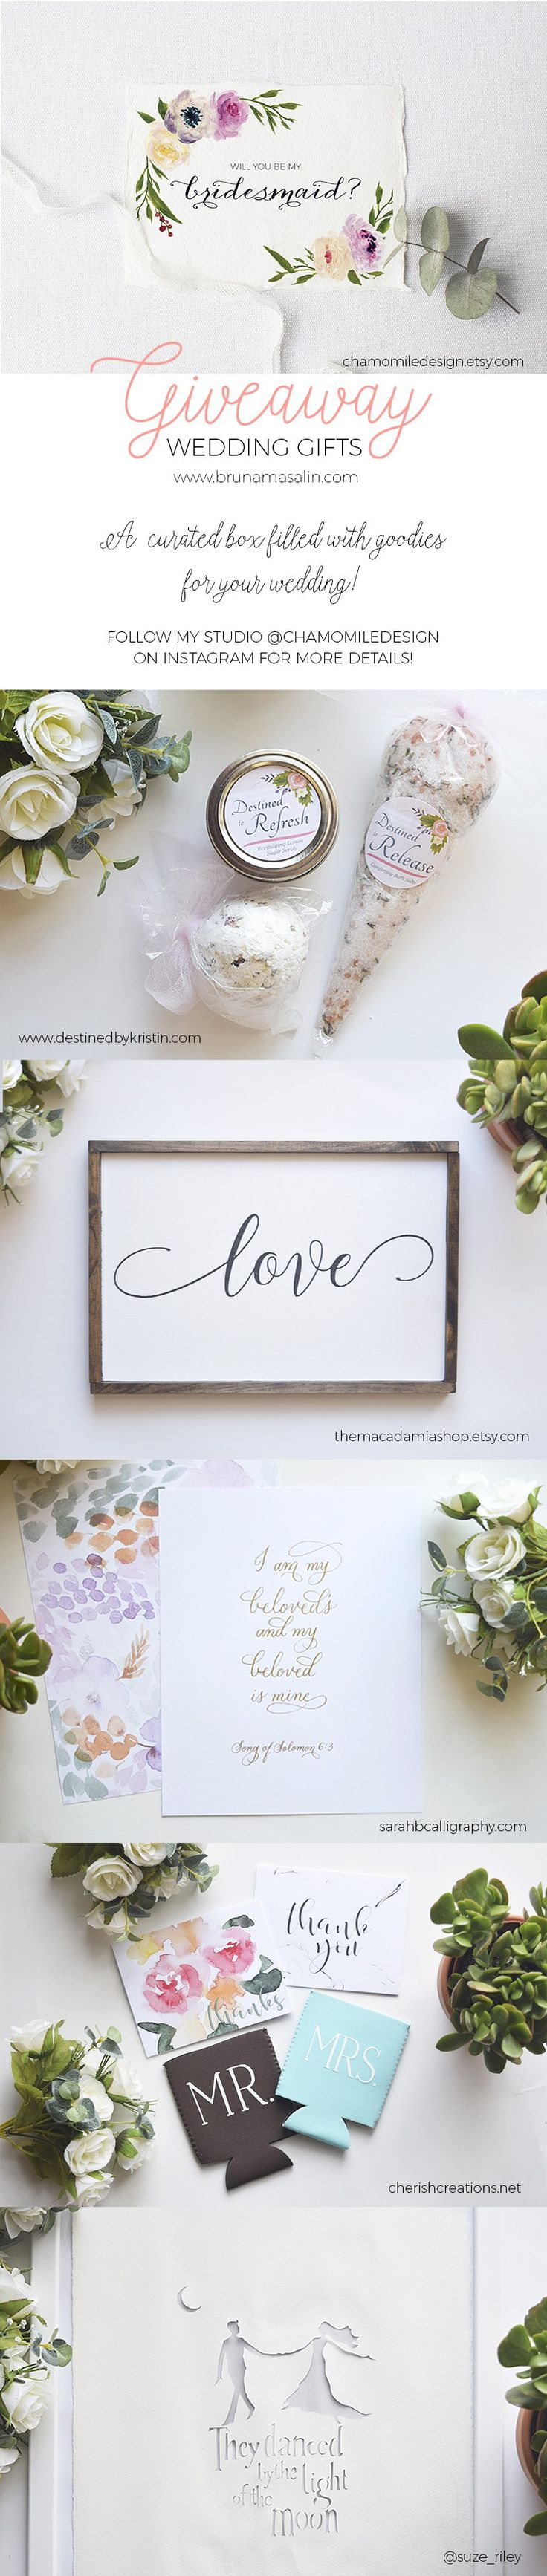 how to write thank you notes for wedding gift cards%0A Wedding Gifts Giveaway  Skincare produts  Calligraphy Prints  Thank You  notes  Bridesmaids cards